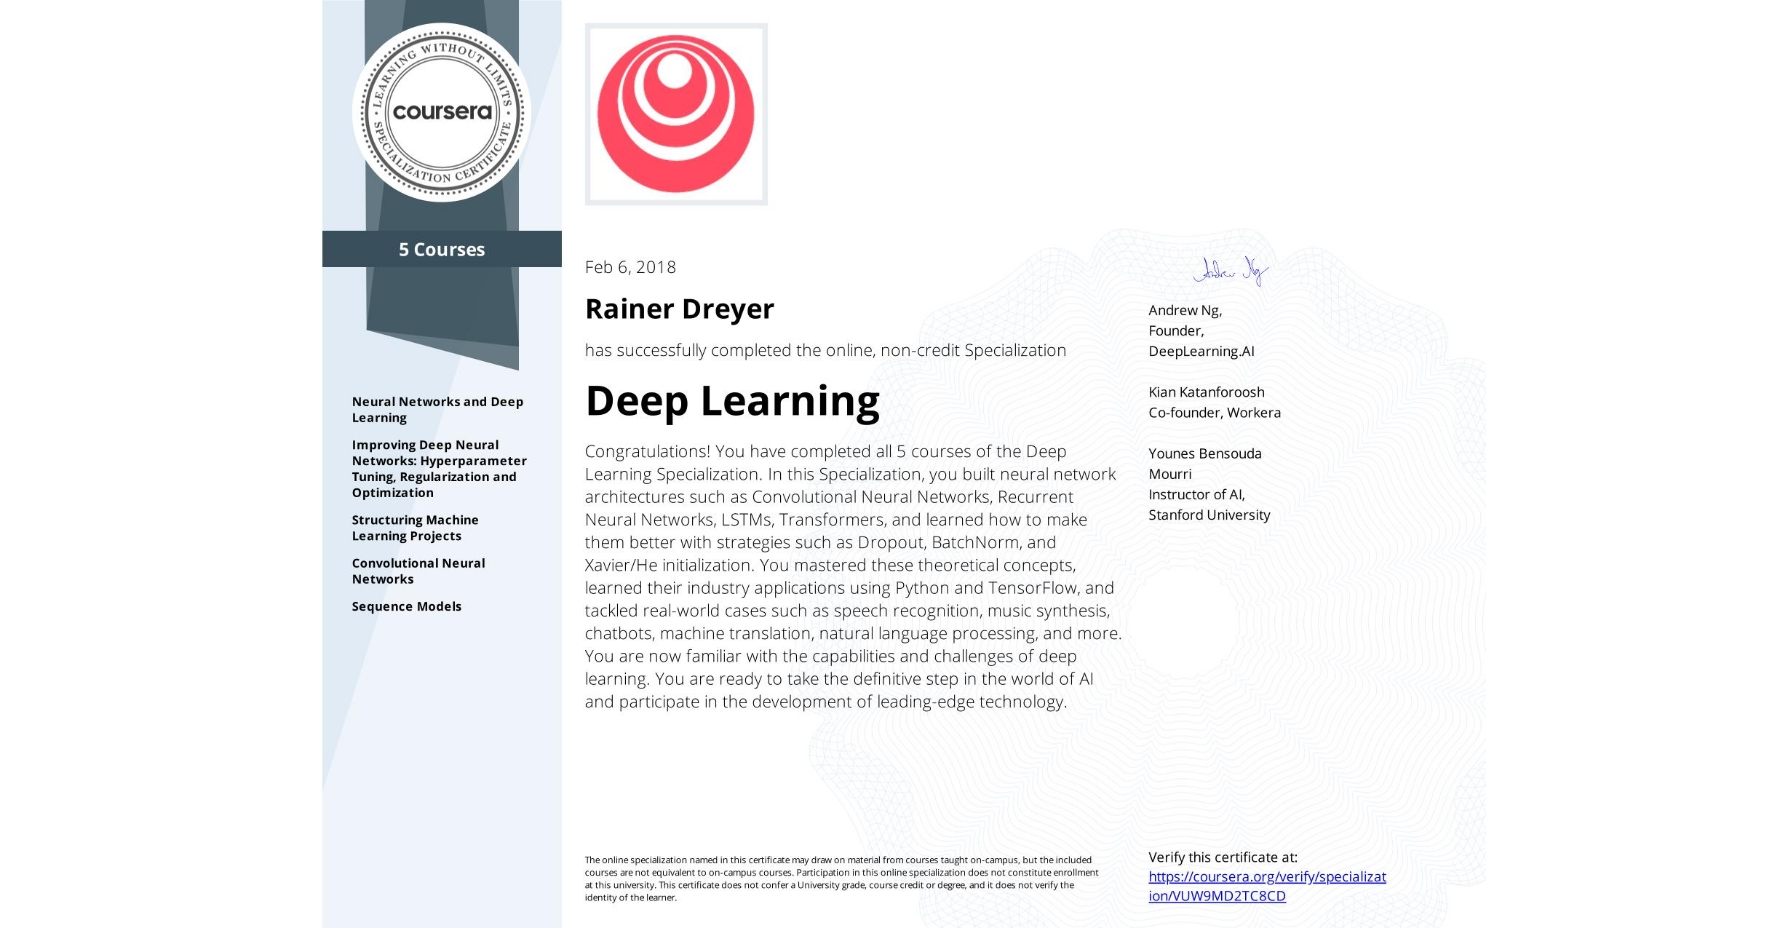 View certificate for Rainer Dreyer, Deep Learning, offered through Coursera. Congratulations! You have completed all five courses of the Deep Learning Specialization.  In this Specialization, you built neural network architectures such as Convolutional Neural Networks, Recurrent Neural Networks, LSTMs, Transformers and learned how to make them better with strategies such as Dropout, BatchNorm, Xavier/He initialization, and more. You mastered these theoretical concepts and their application using Python and TensorFlow and also tackled real-world case studies such as autonomous driving, sign language reading, music generation, computer vision, speech recognition, and natural language processing.   You're now familiar with the capabilities, challenges, and consequences of deep learning and are ready to participate in the development of leading-edge AI technology.